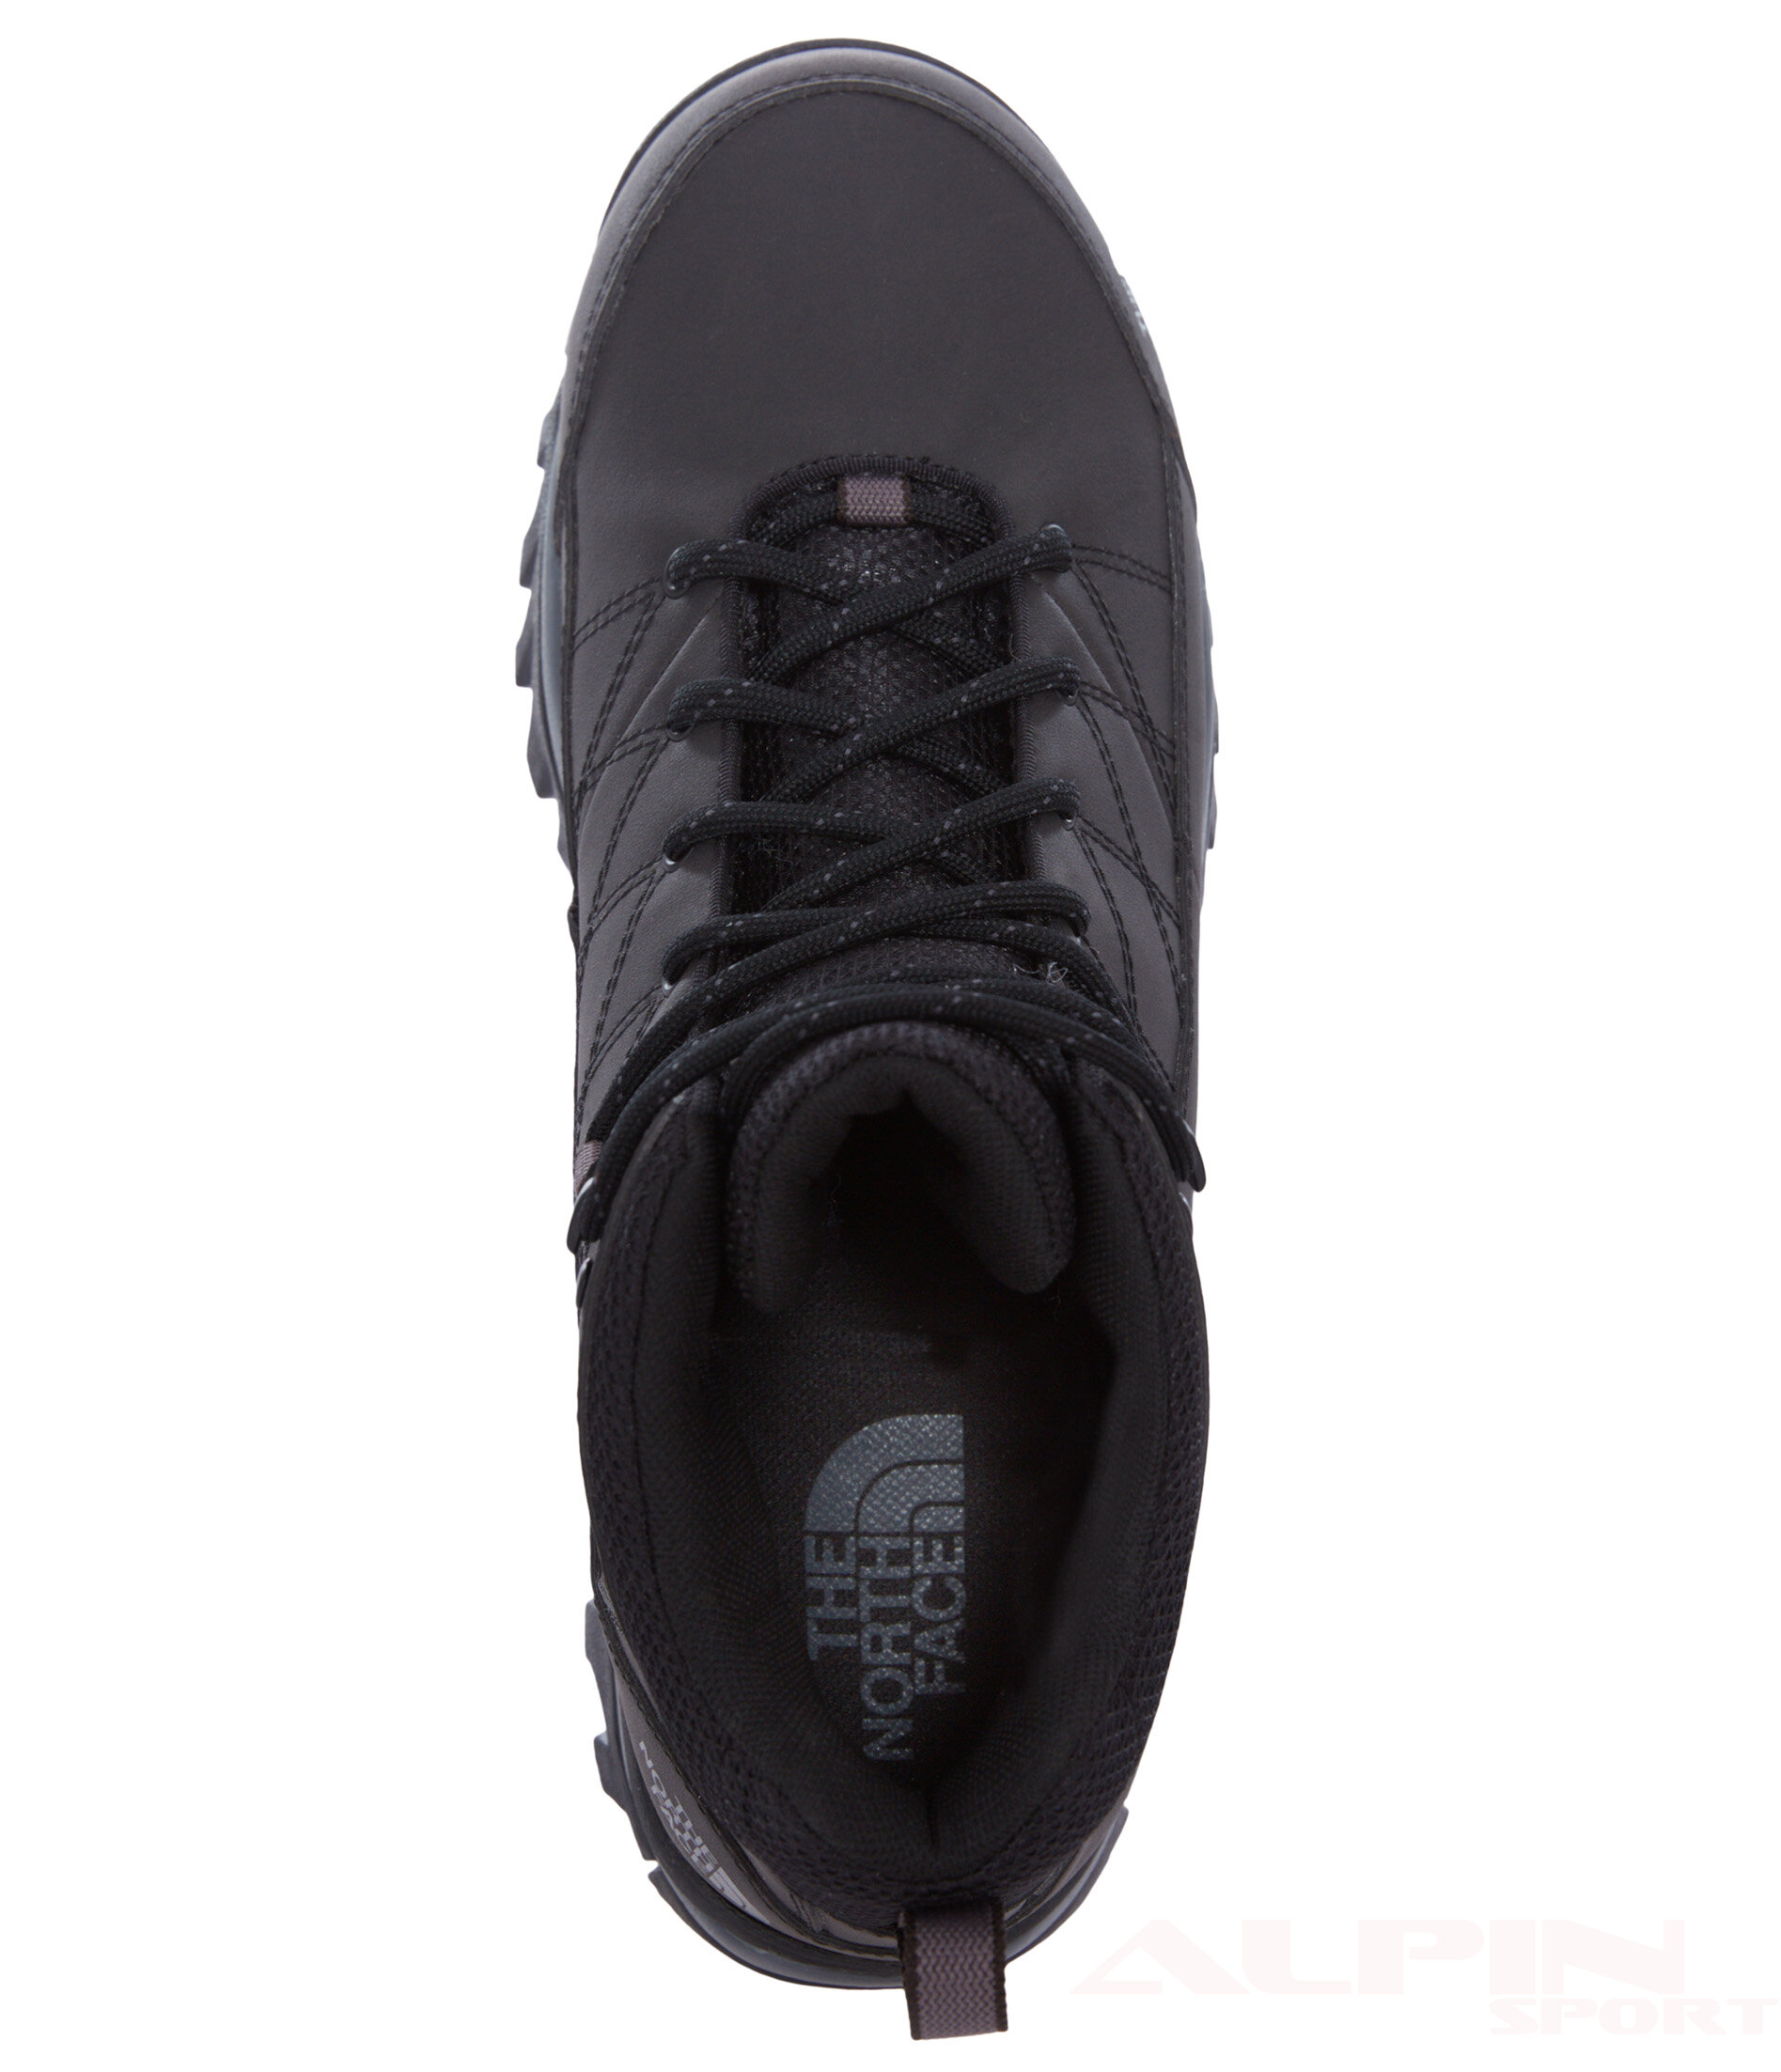 Buty męskie THE NORTH FACE Storm Strike WP 005_LO_2T3S KZ2 1